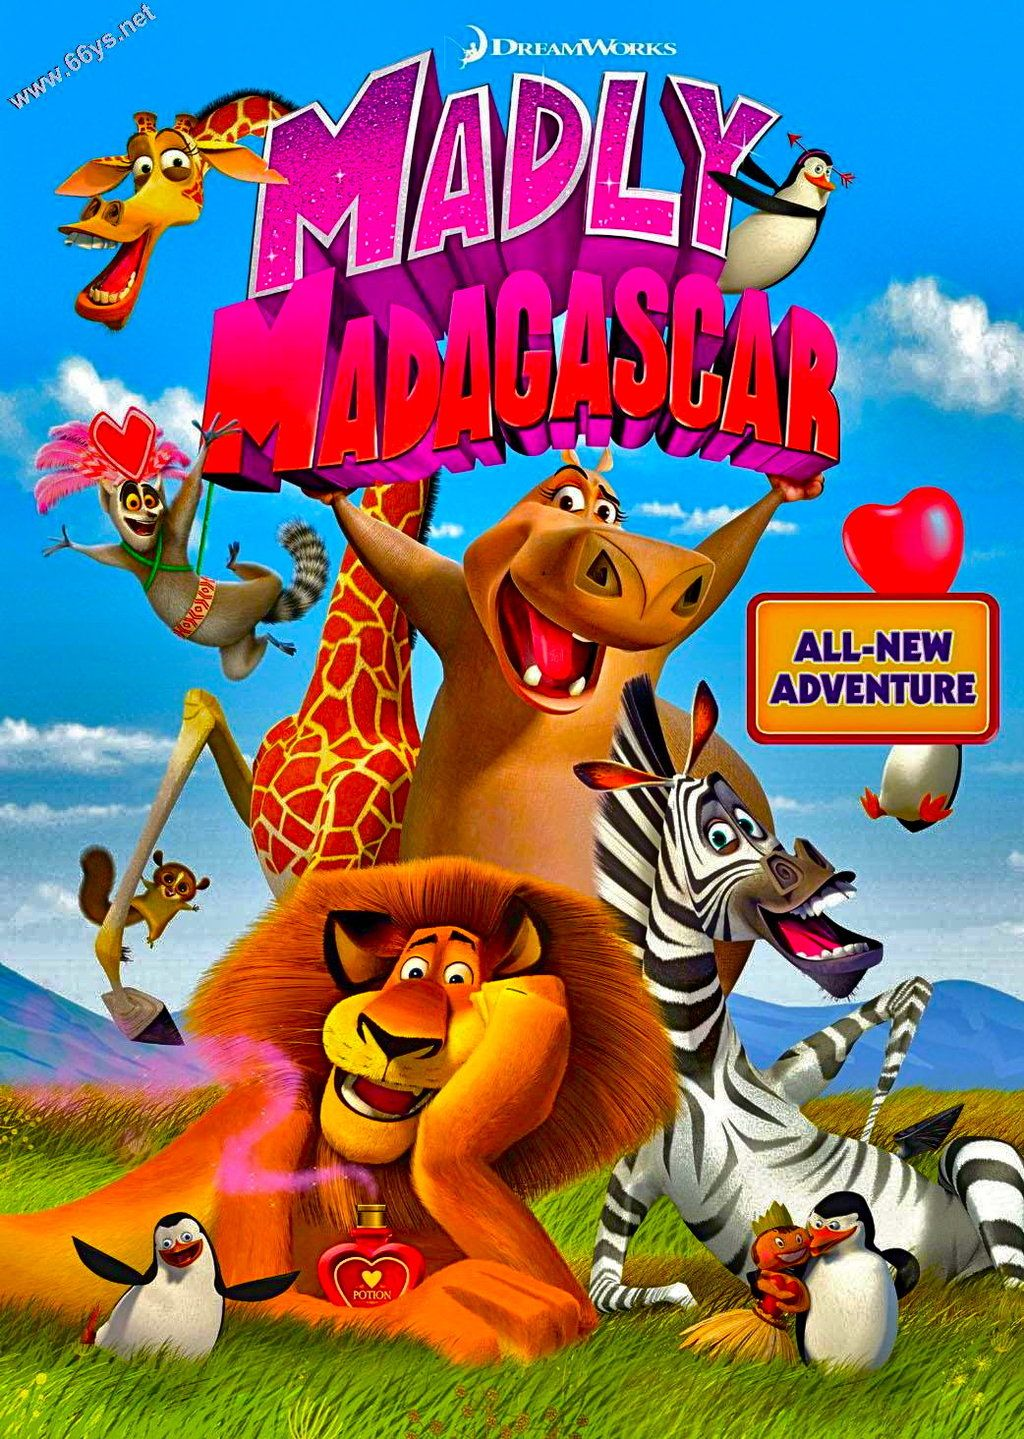 Watch Movies Online For Free Watch Cartoon Online Watch Movies For Free Madagascar Movie Watch The Lion King Madagascar